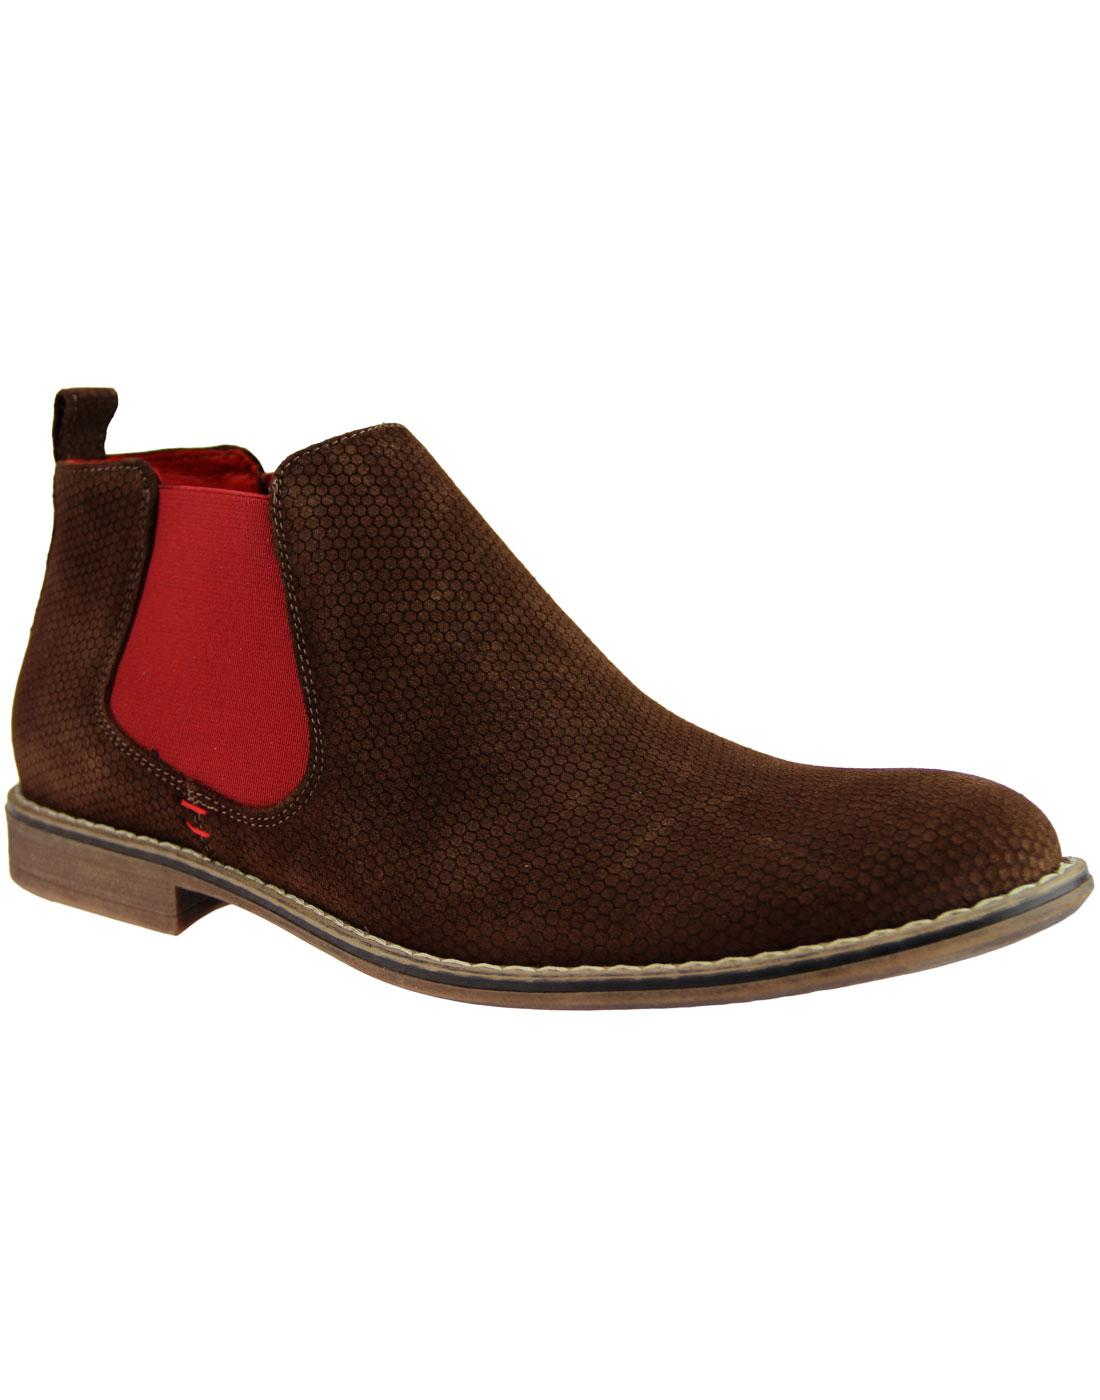 LACUZZO Mod Atom Embossed Suede Chelsea Boots (DB)